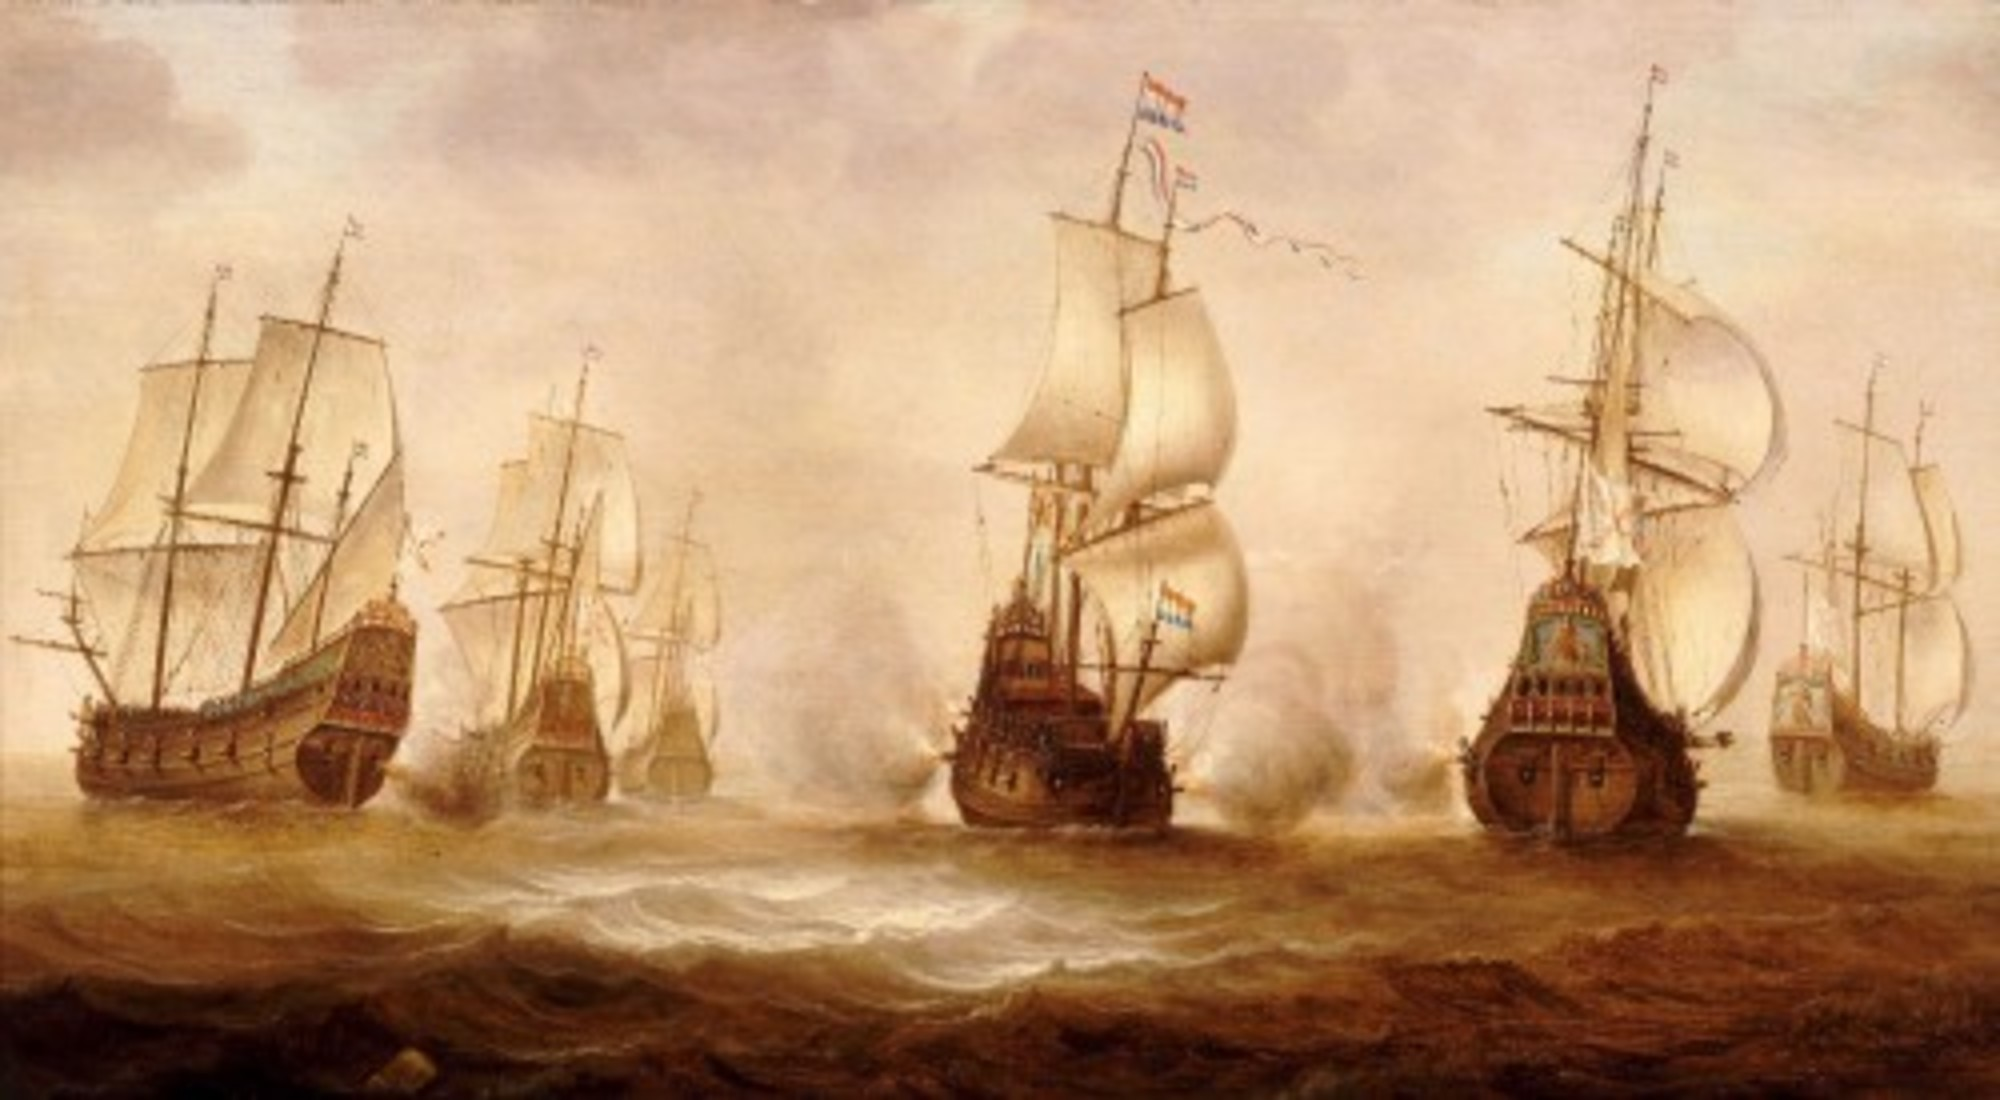 Witte-de-Withs-Action-with-Dunkirkers-off-Nieuwpoort-1640-RMG-BHC0272.jpg